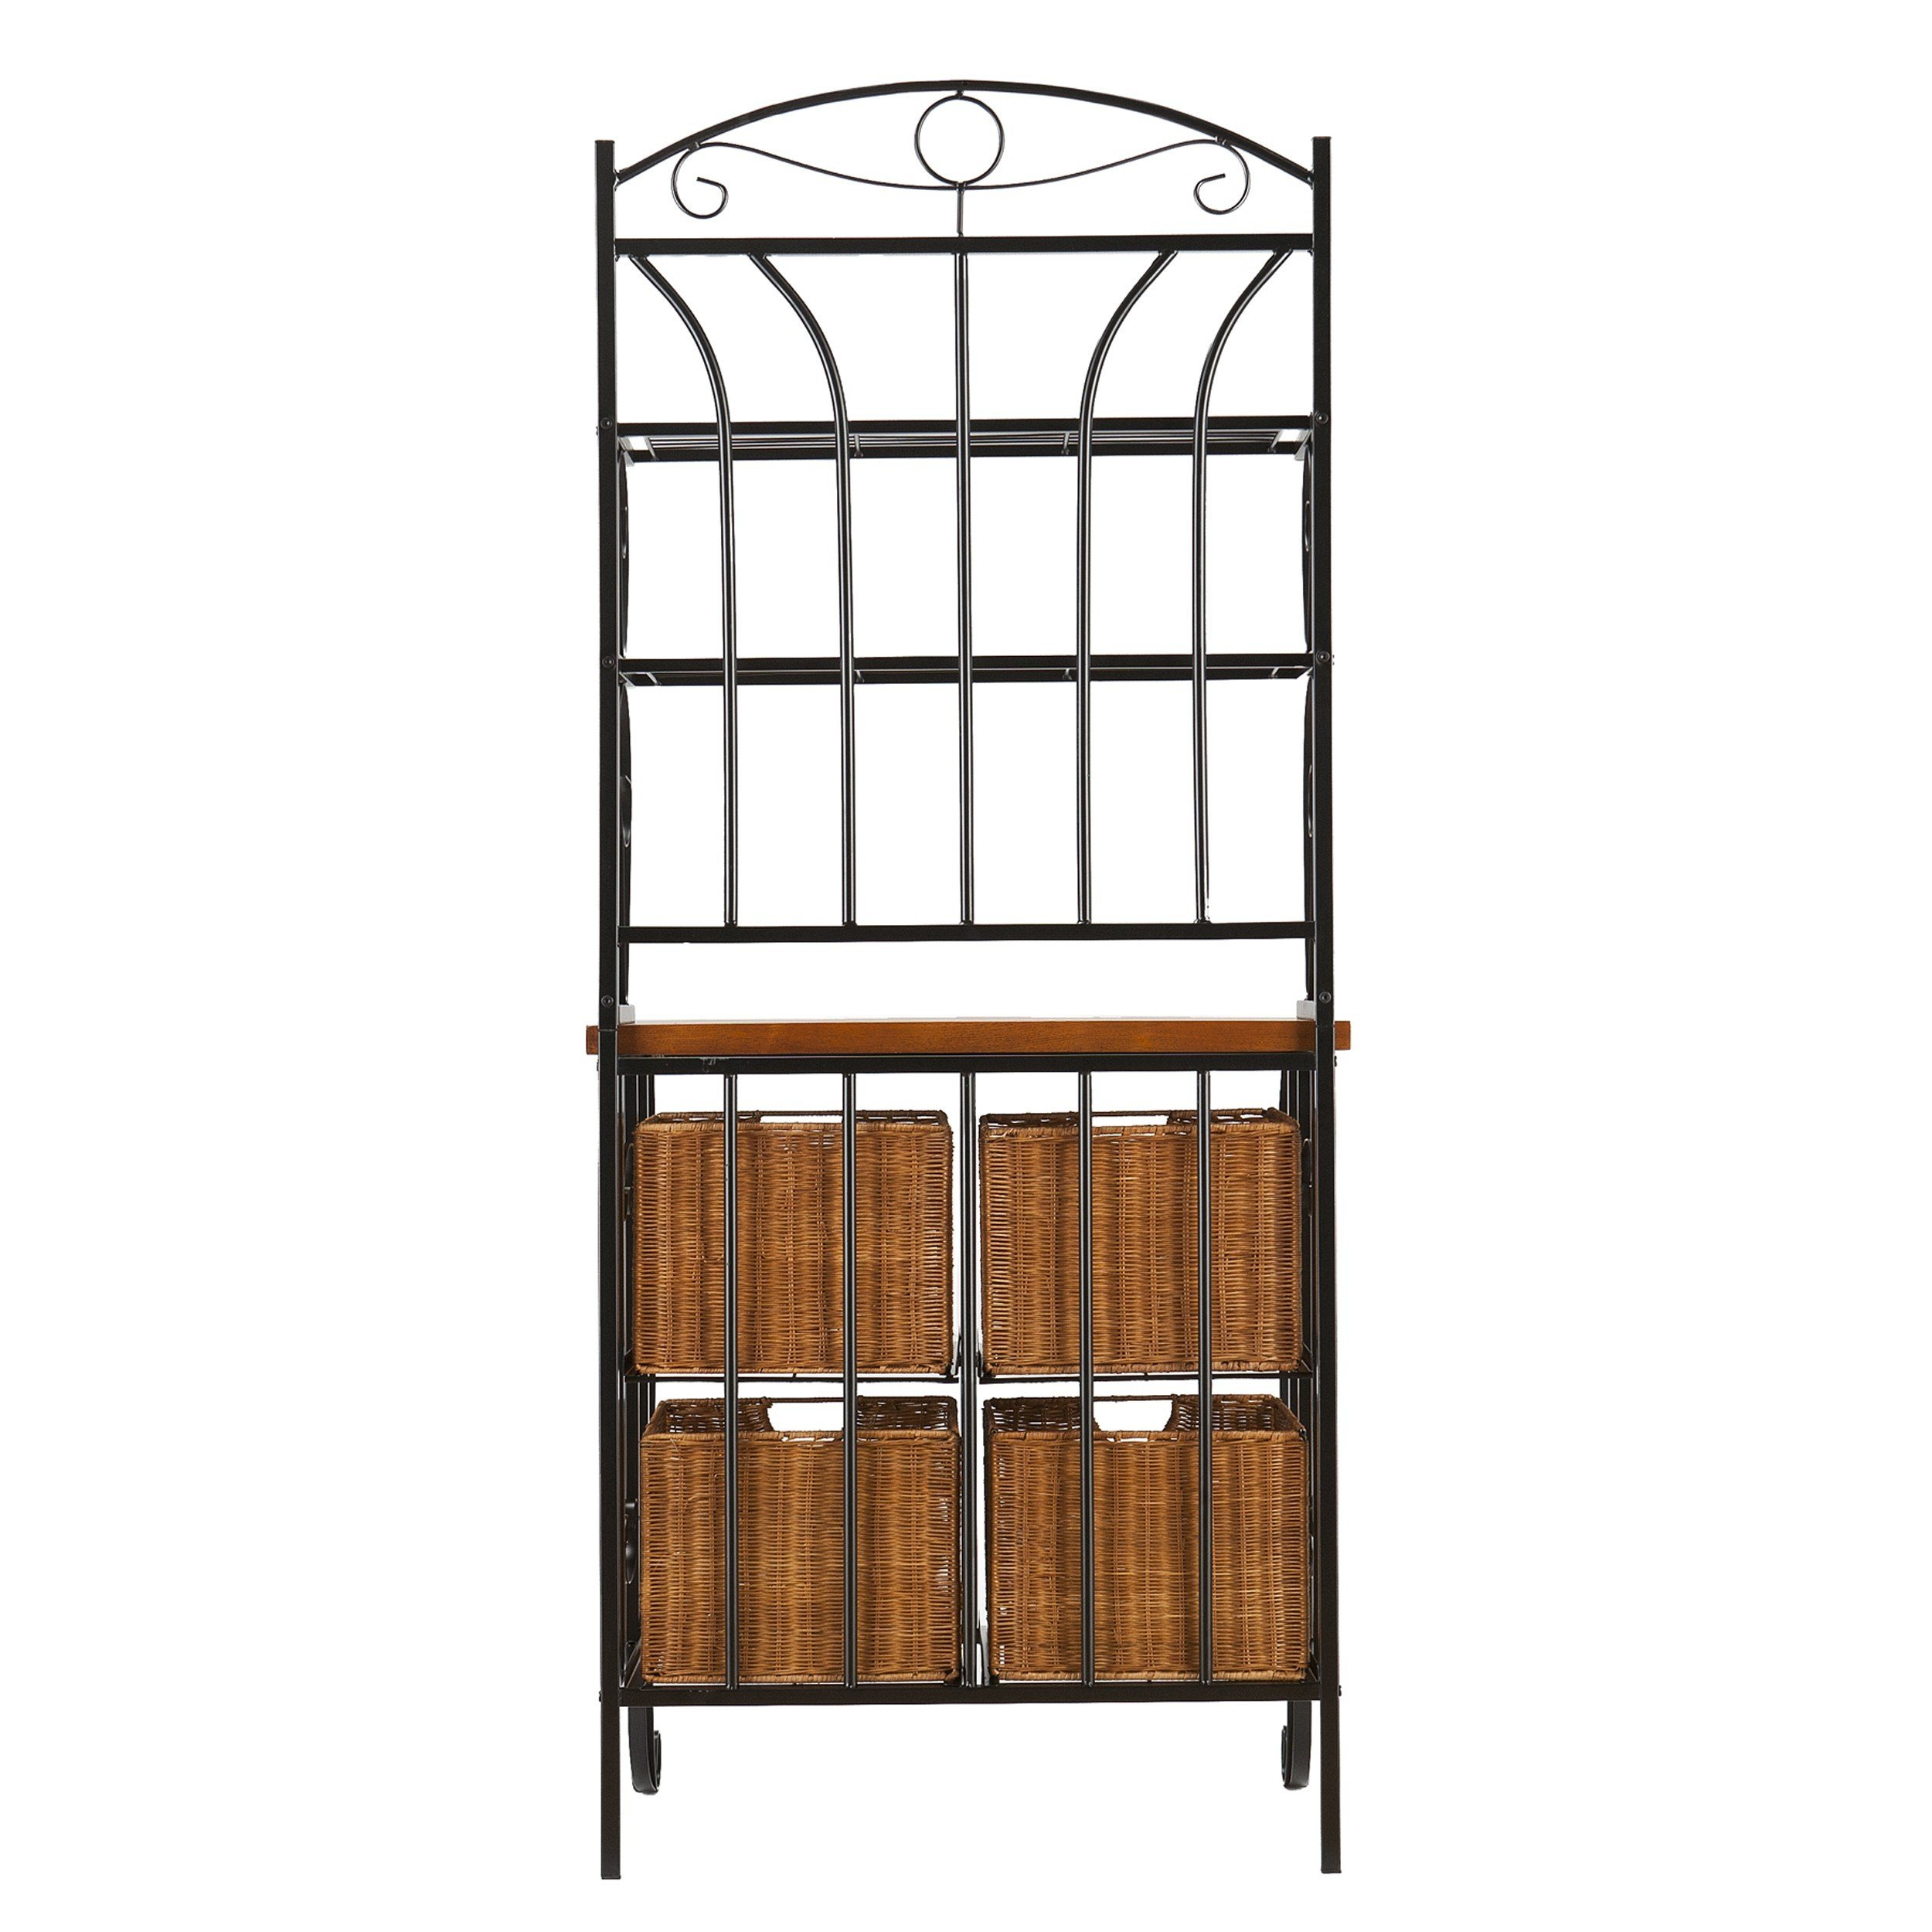 Harper Blvd Iron and Wicker Bakers Rack by Harper Blvd